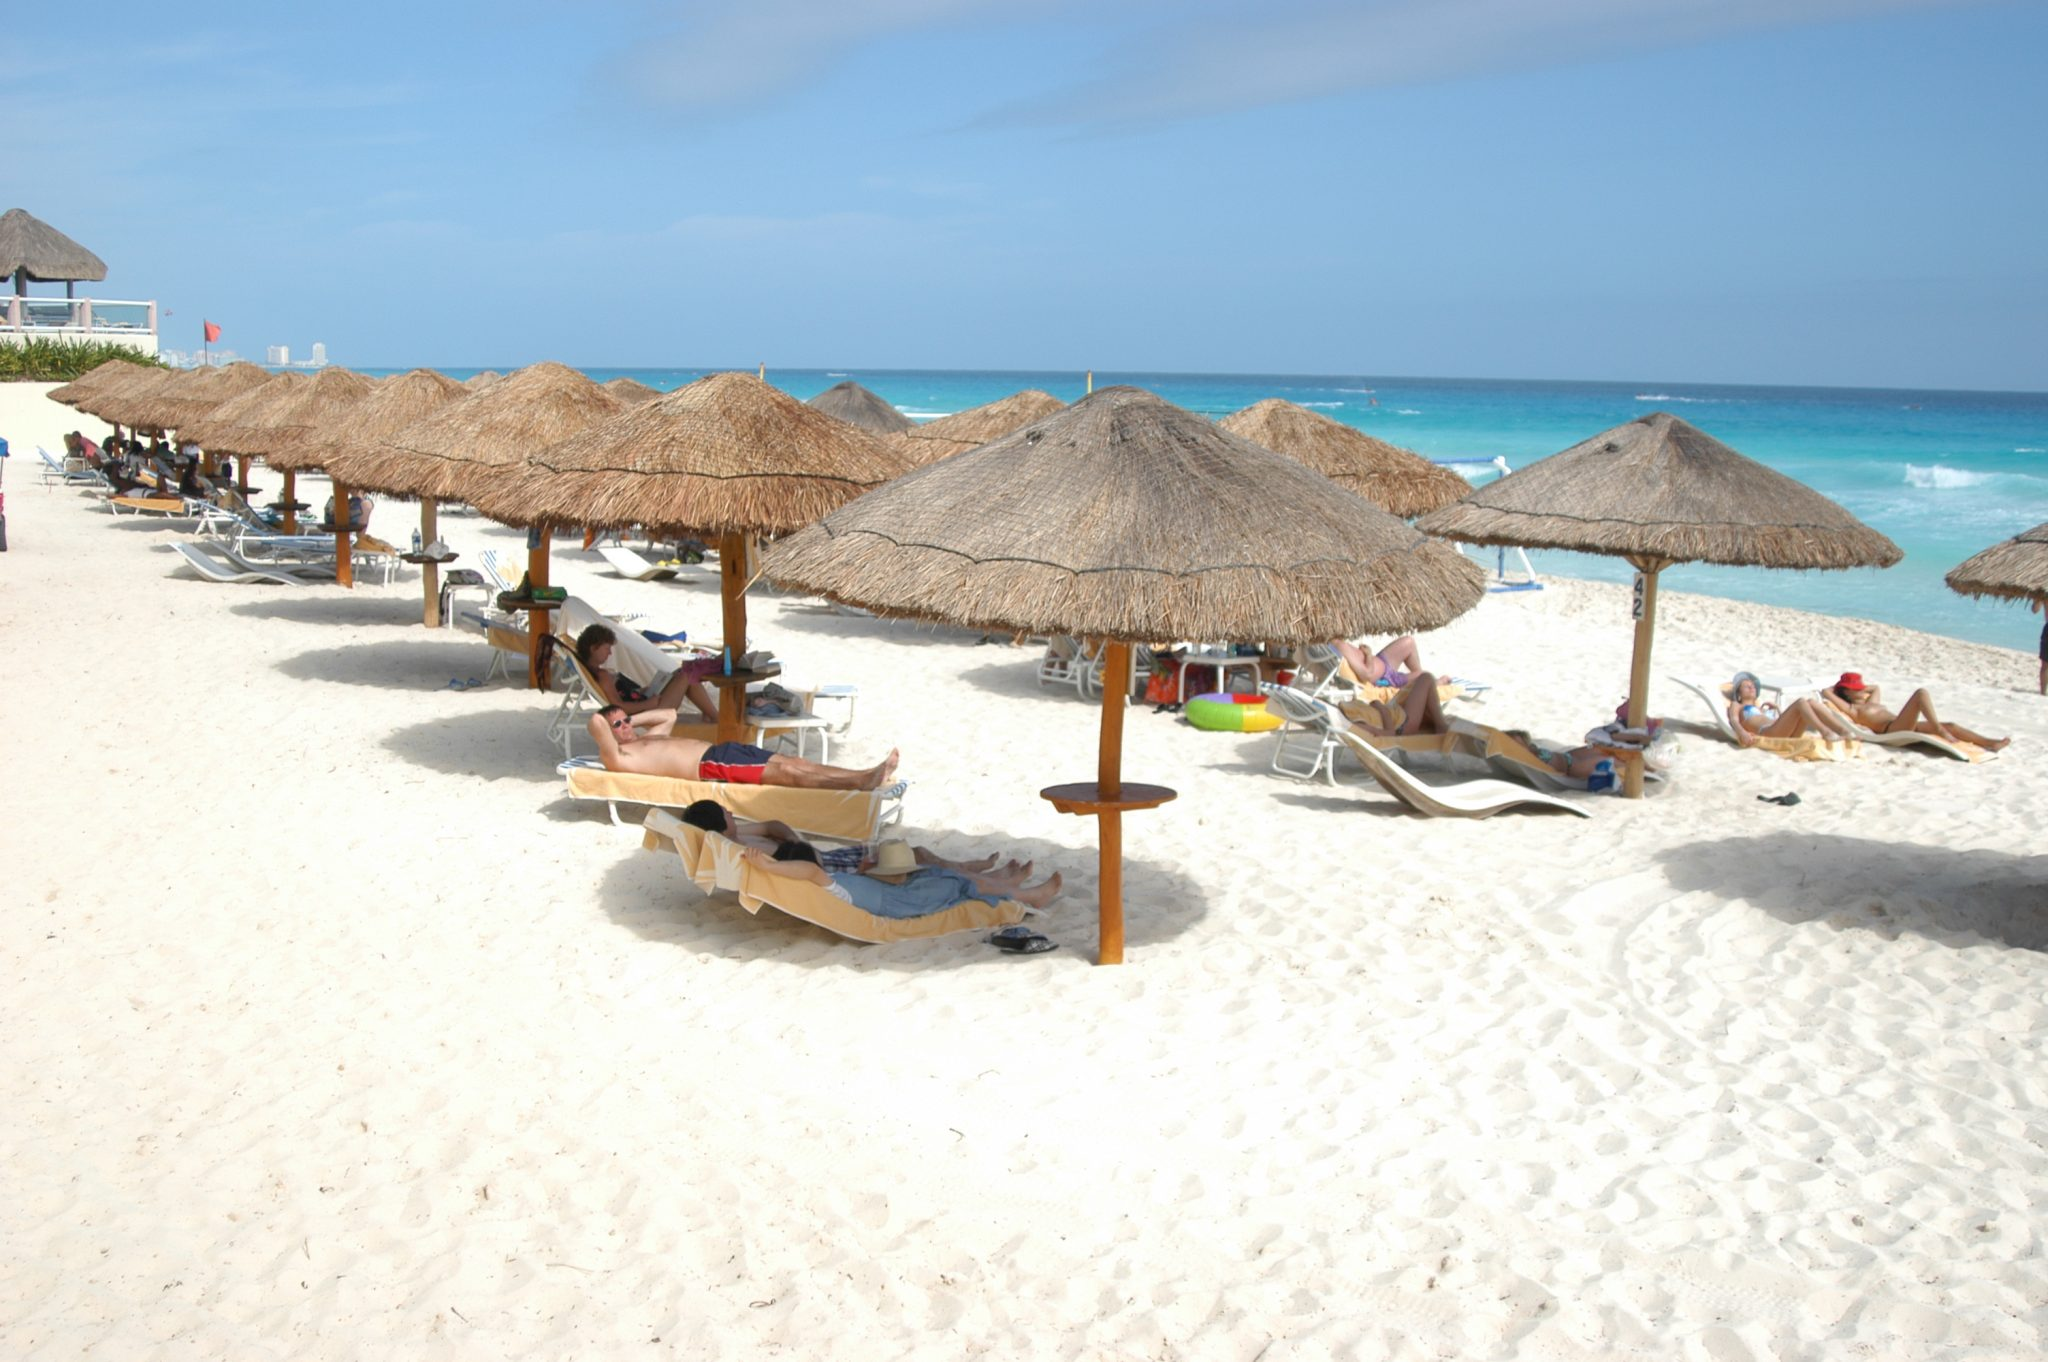 Mexico beaches to reopen for tourism after lockdown